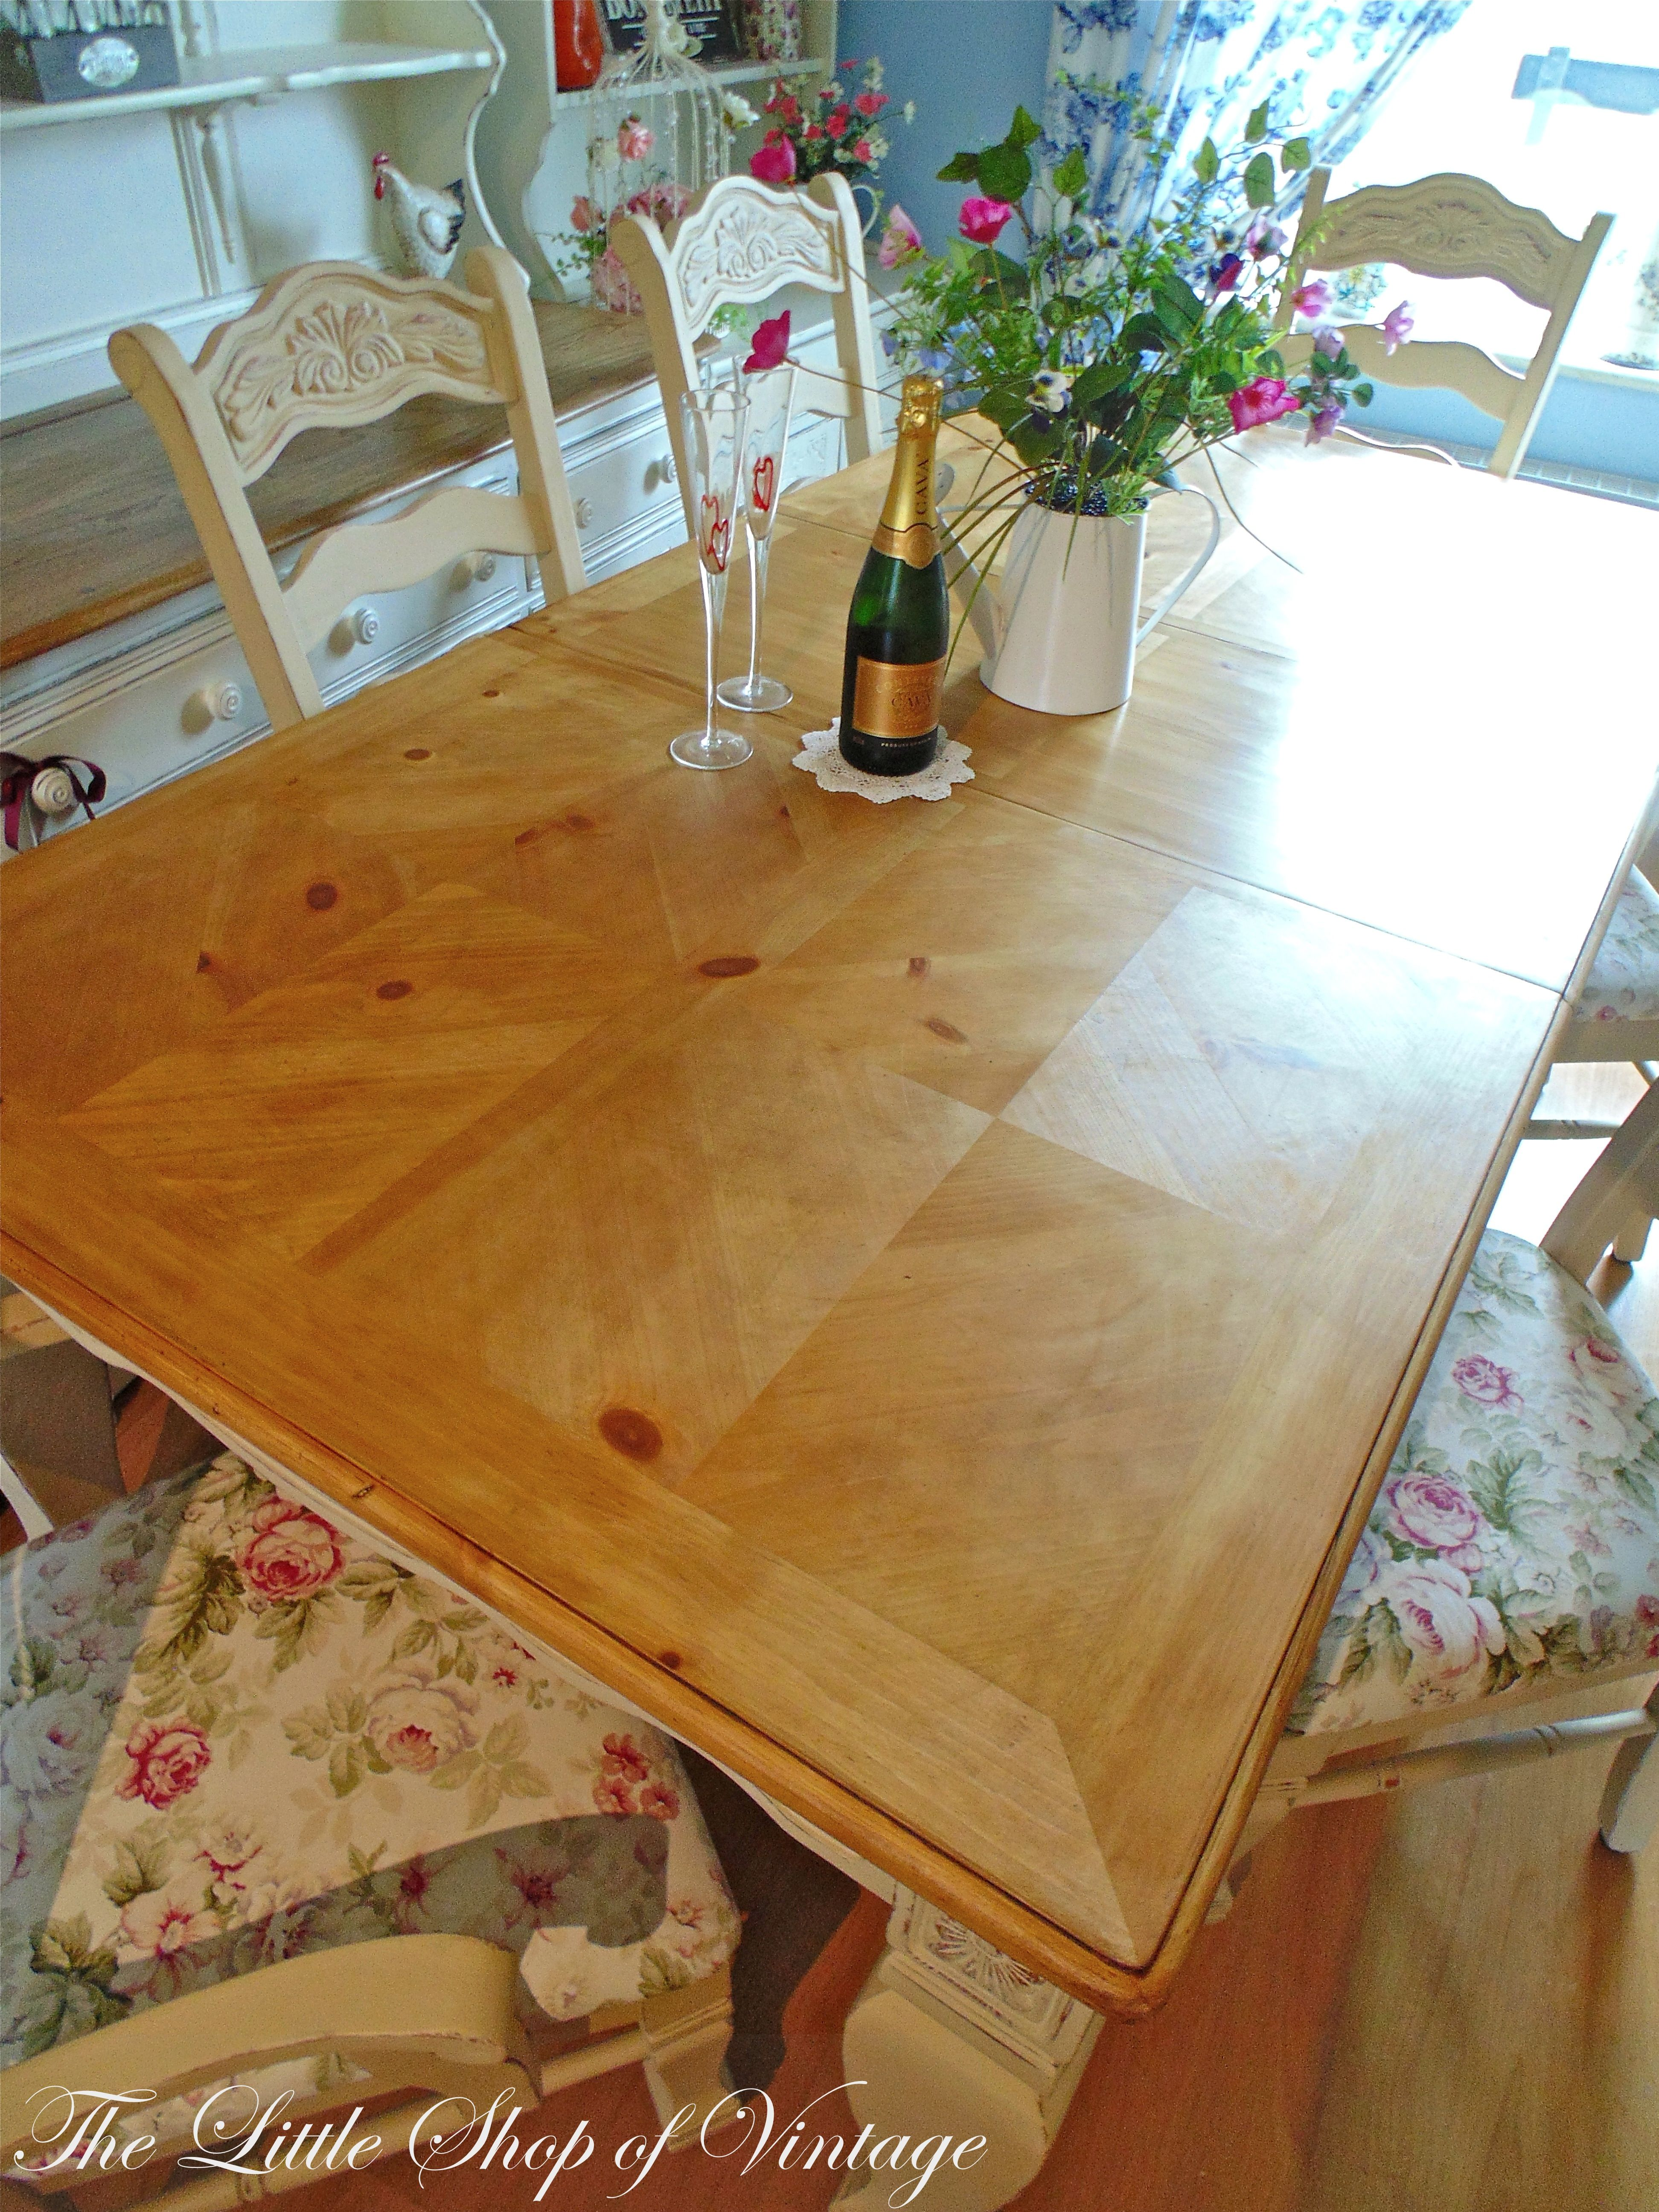 Don T Be Afraid To Sand A Table Top Even Inlaid Wood Veneer It Often Reveals The Most Beautiful Patterns Refinished Table Refinish Table Top Wood Table Top